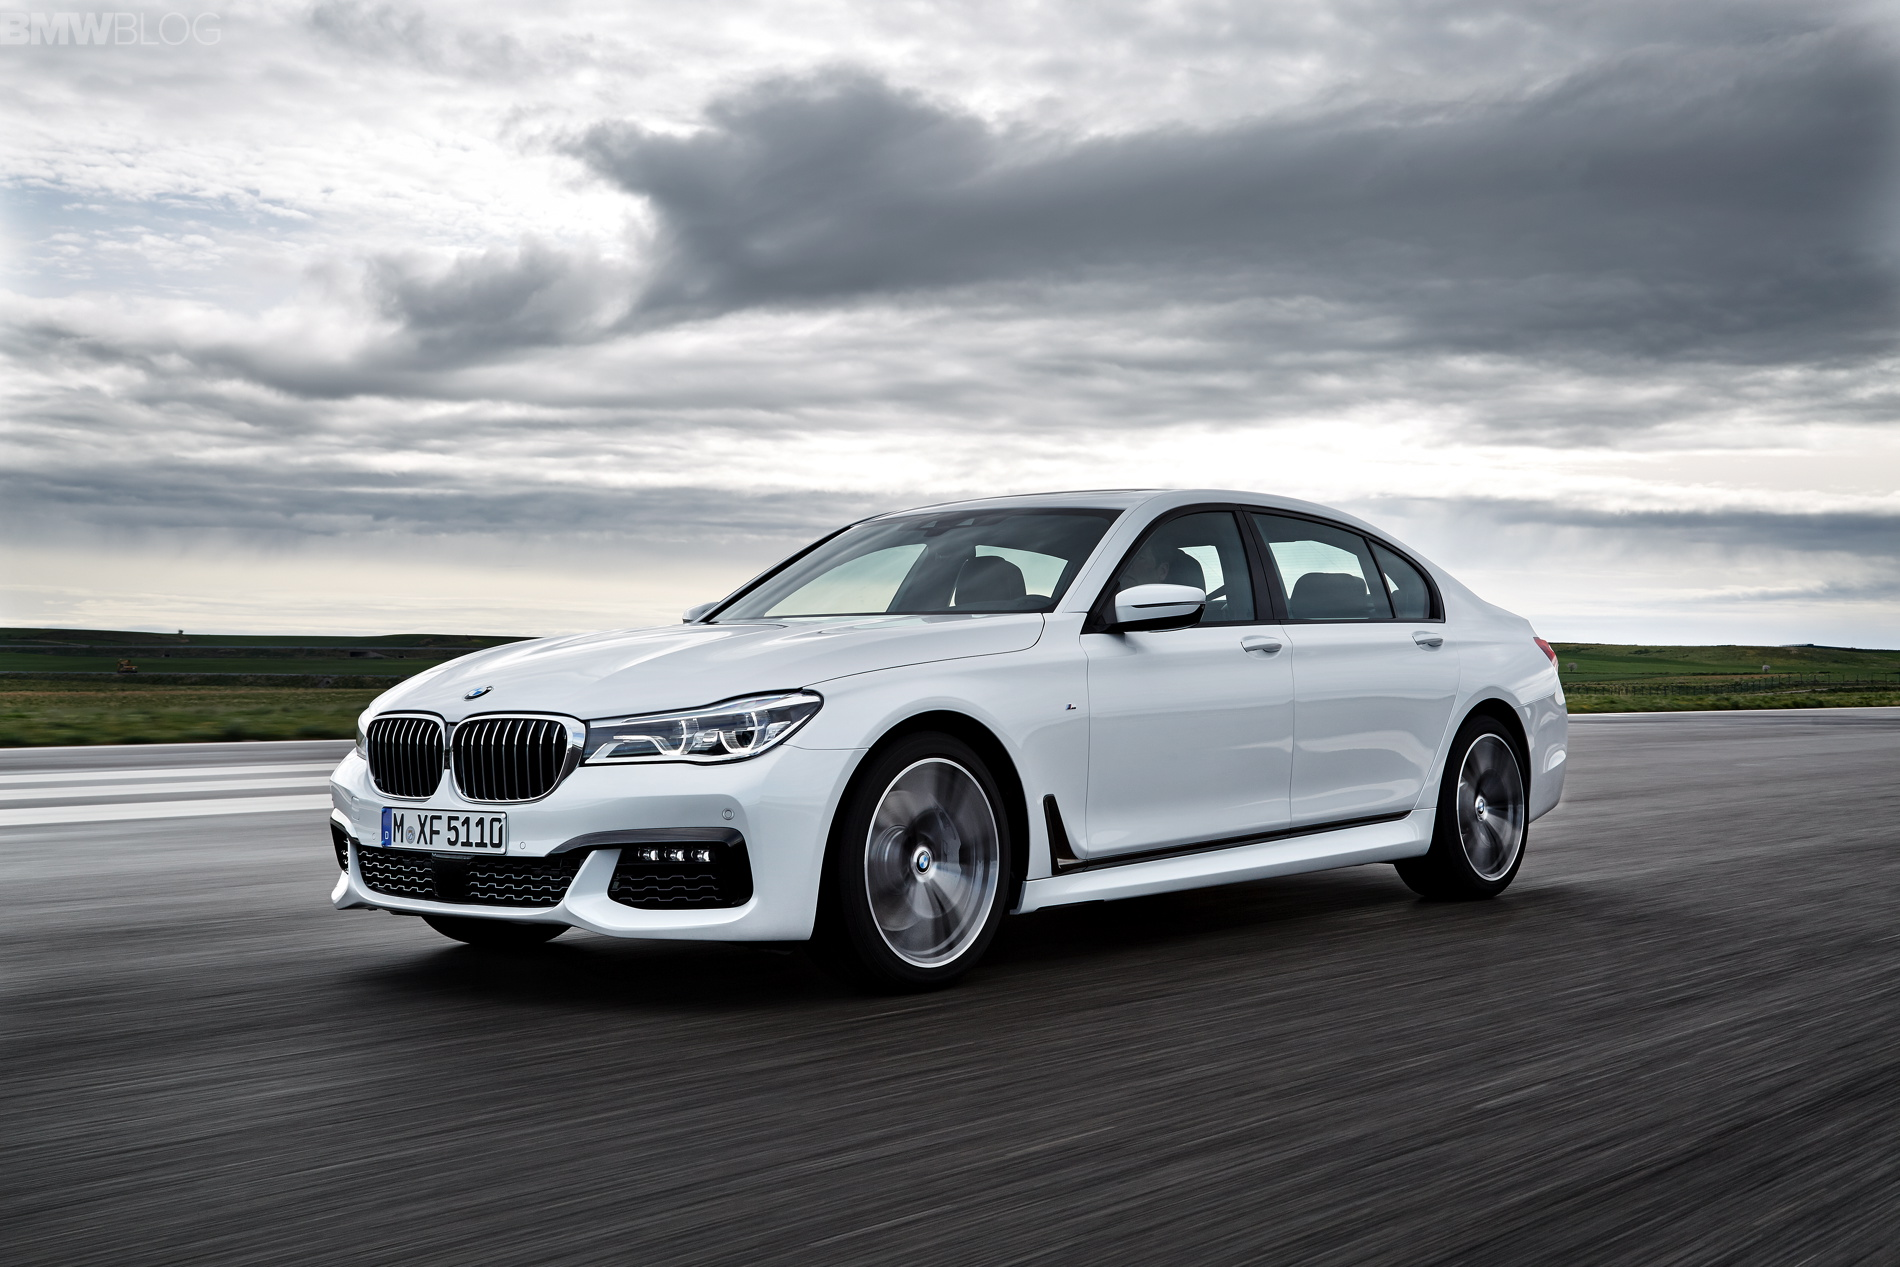 Bmw 750d Price For Quad Turbo Diesel Starts At 107 700 Euros